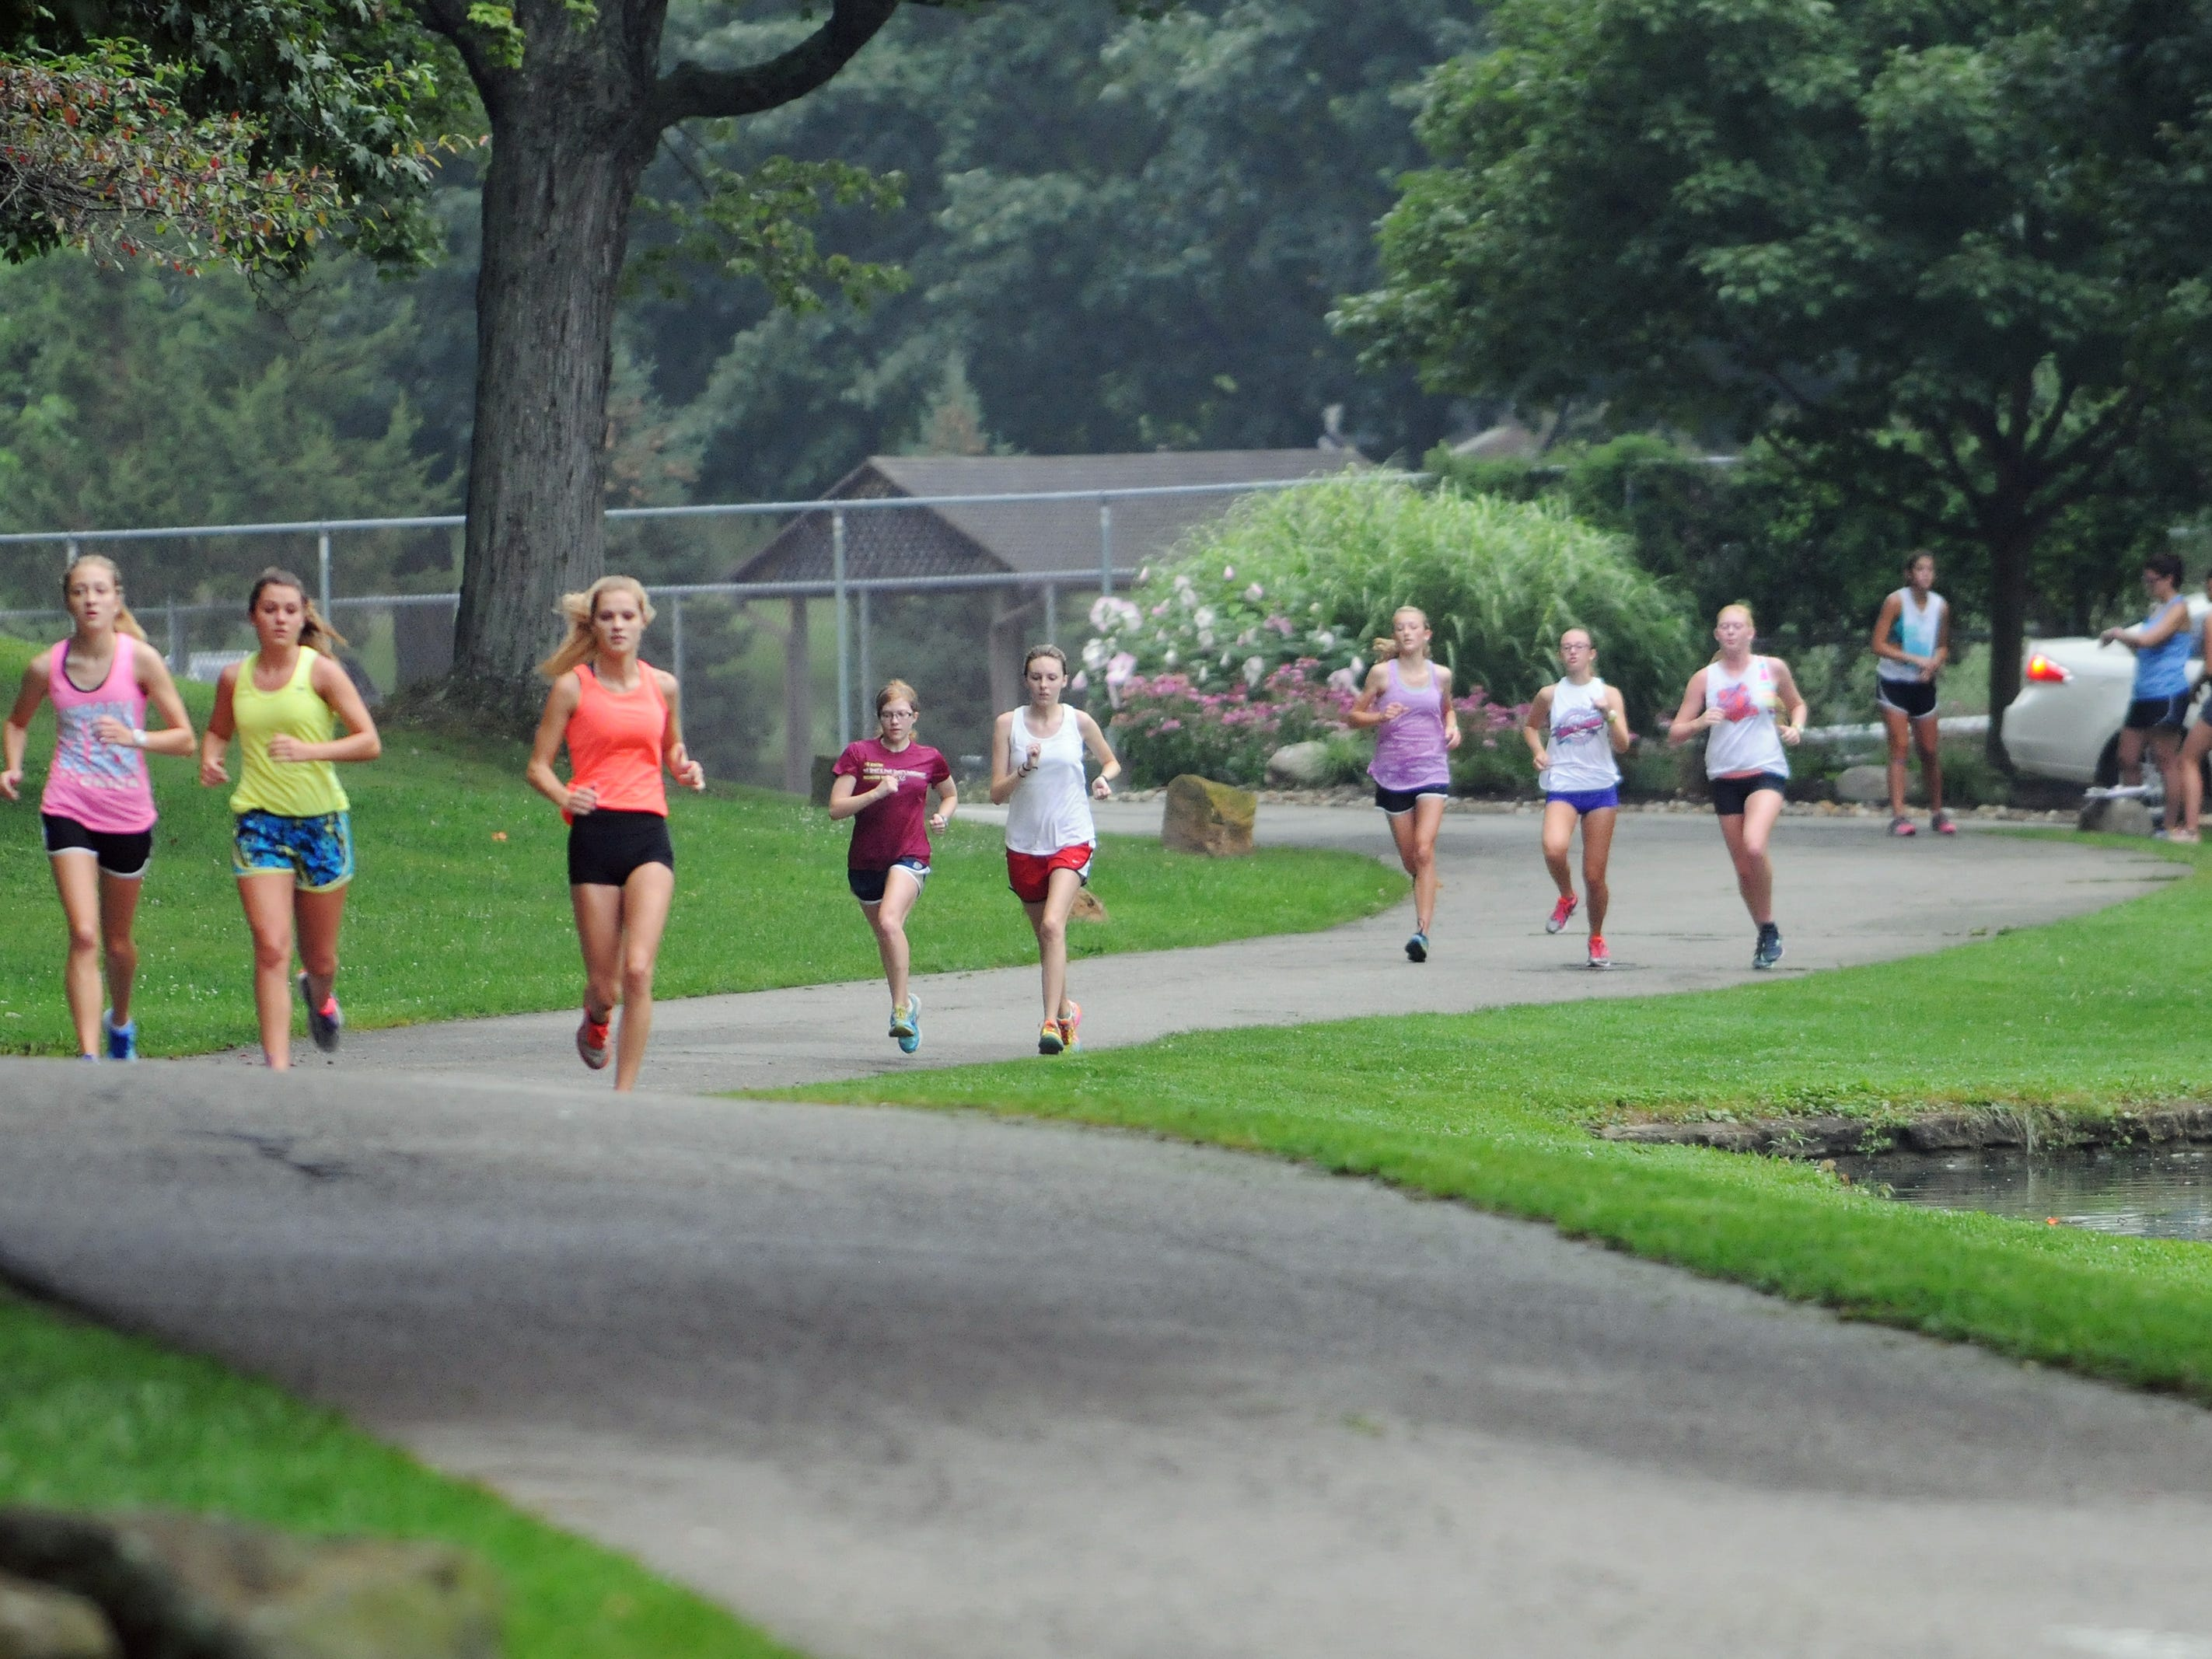 The Lancaster High School girls cross country team runs during practice Aug. 12 at Rising Park in Lancaster.